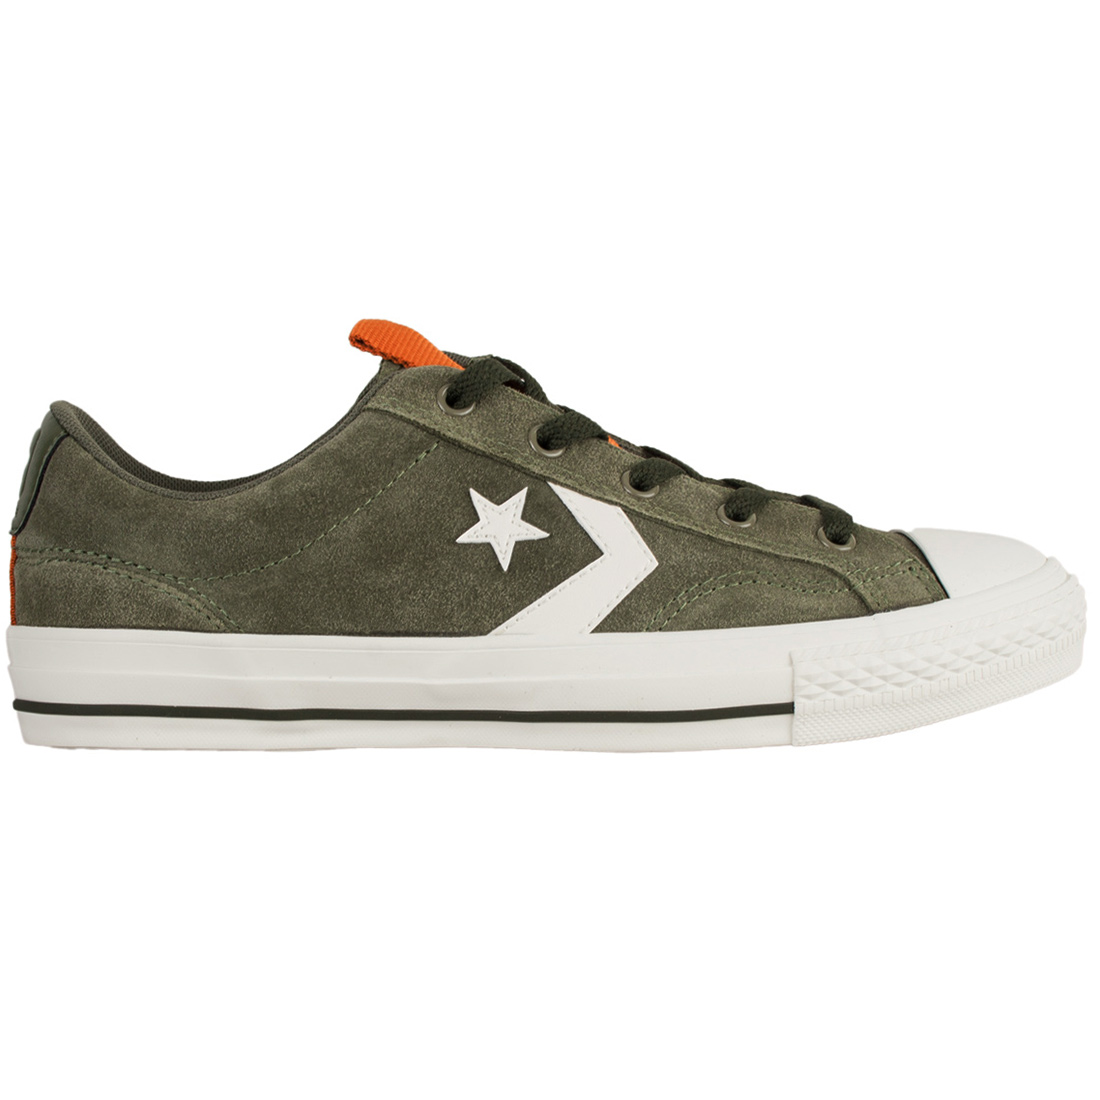 08b93a569a0e4a ... where can i buy converse star player ox herren leder sneaker grün weiß  162568c cc41b 58794